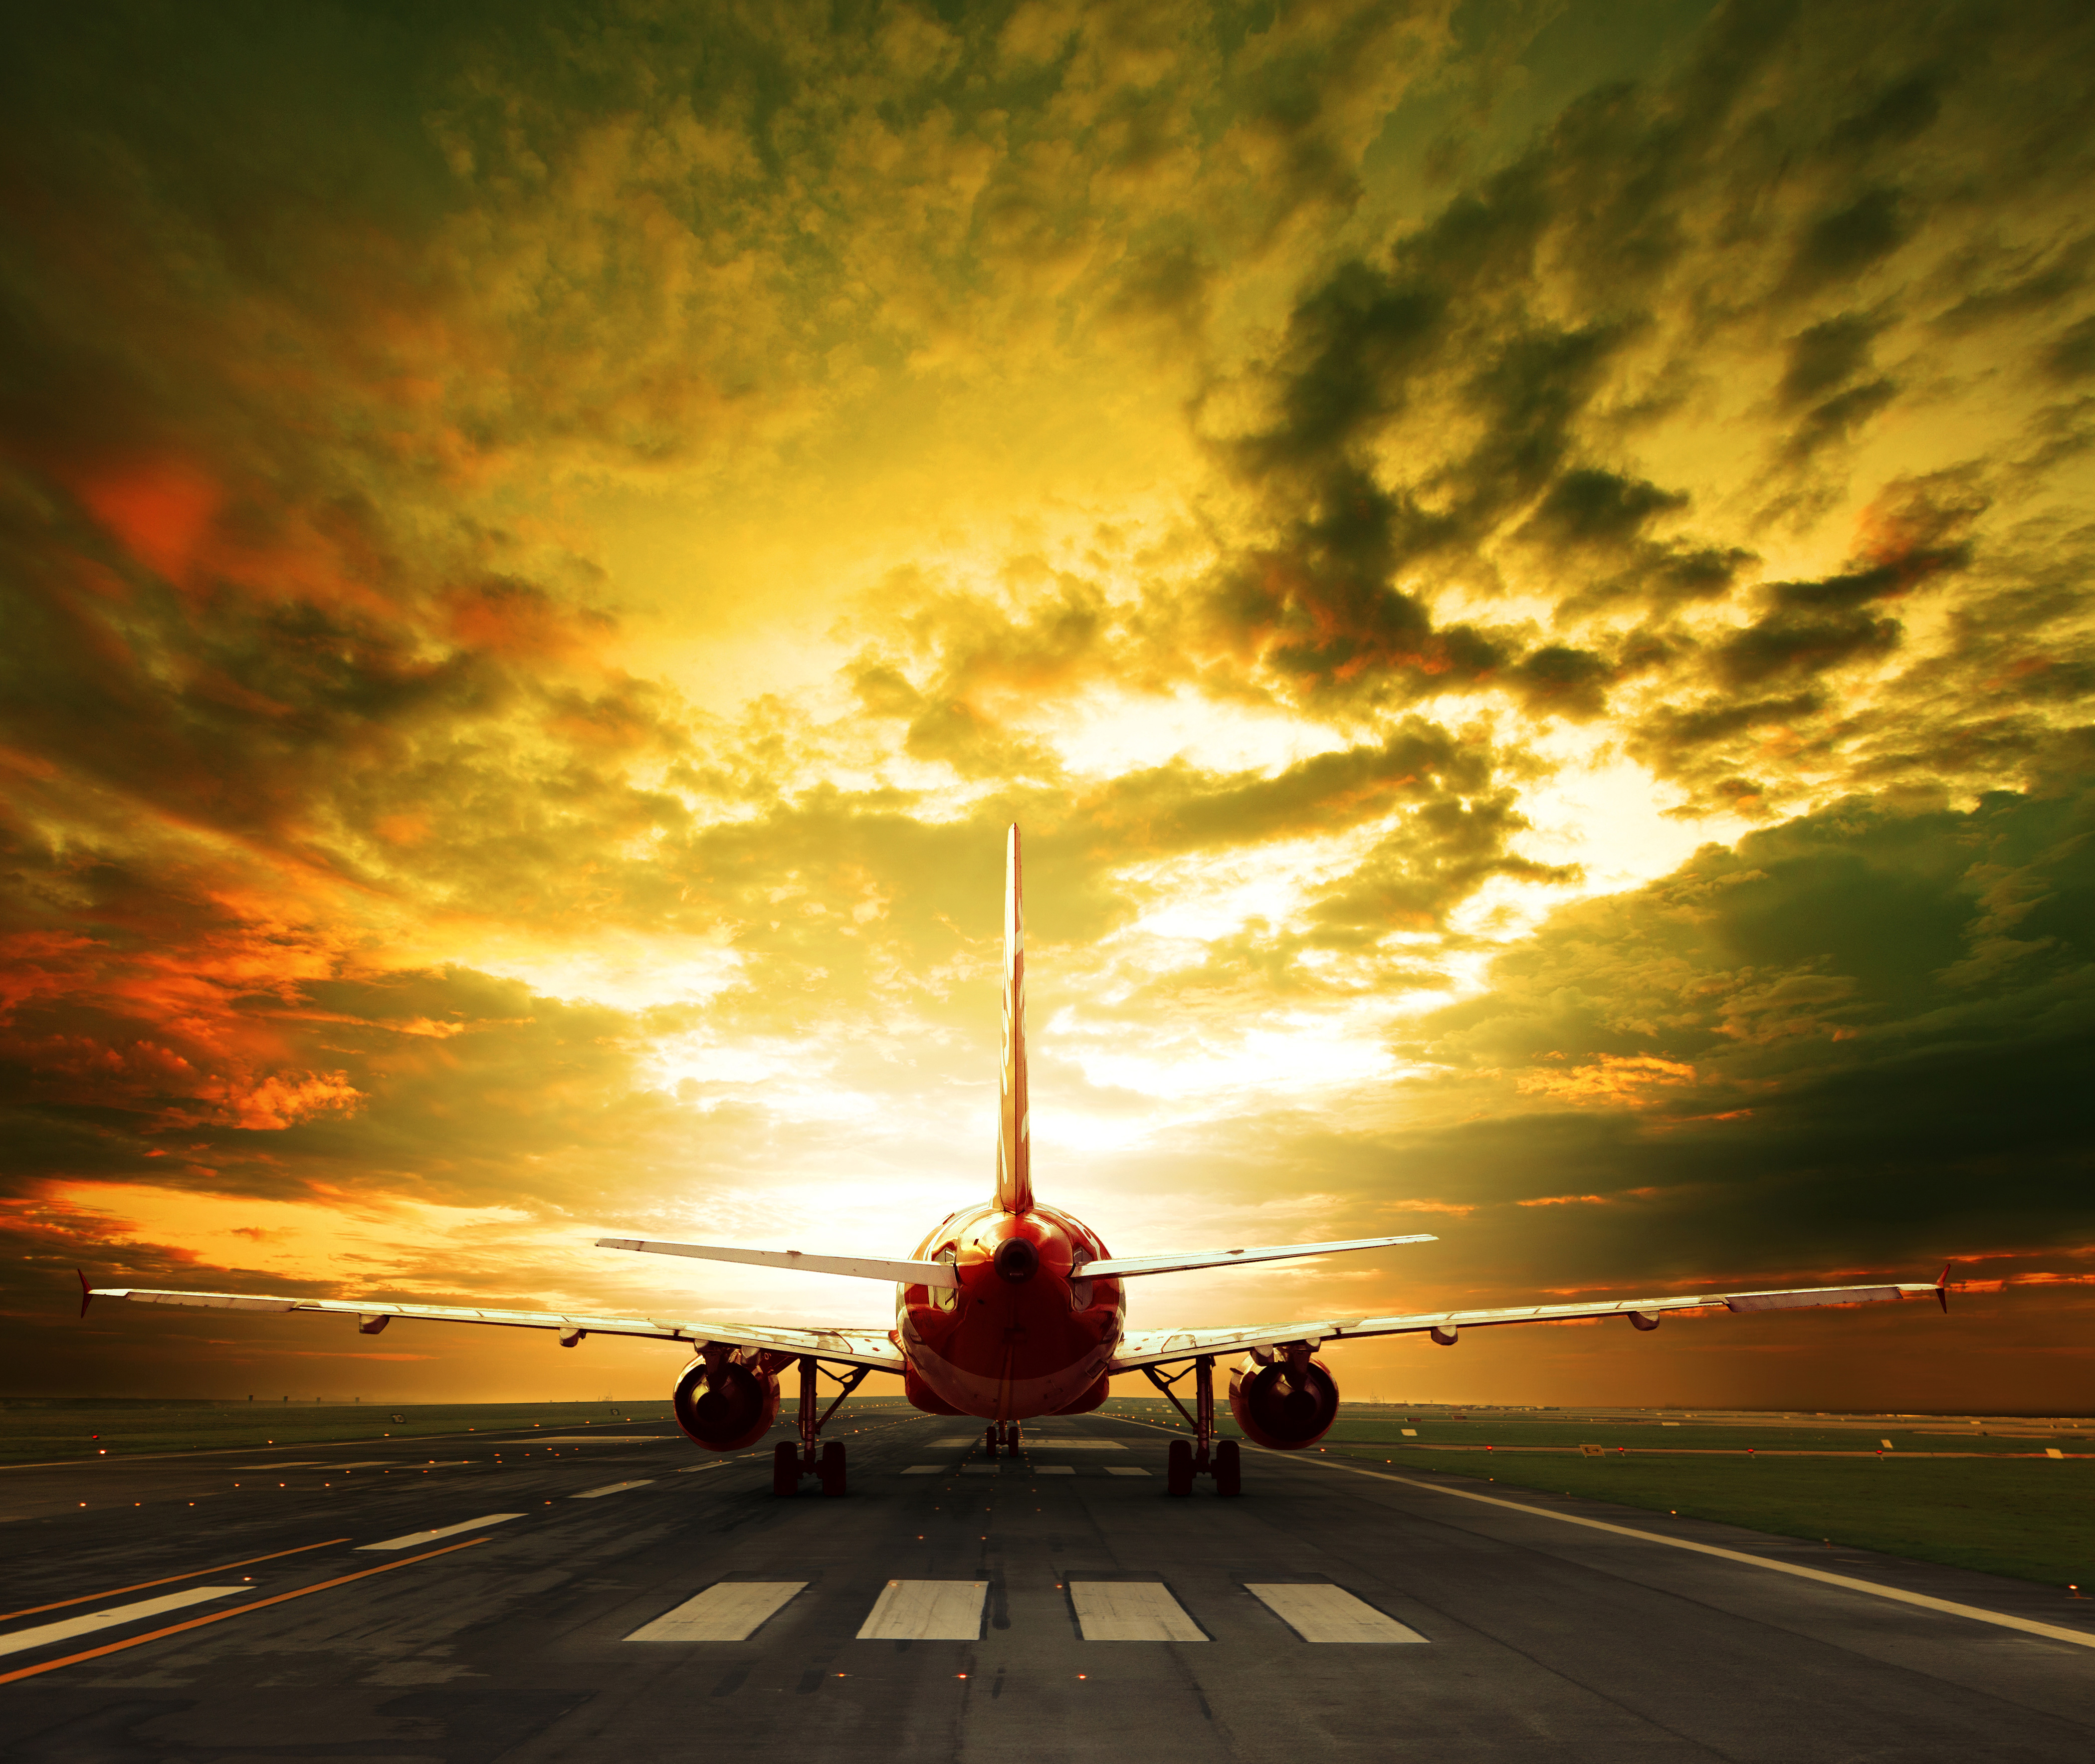 Passenger Airplane 4k, HD Planes, 4k Wallpapers, Images